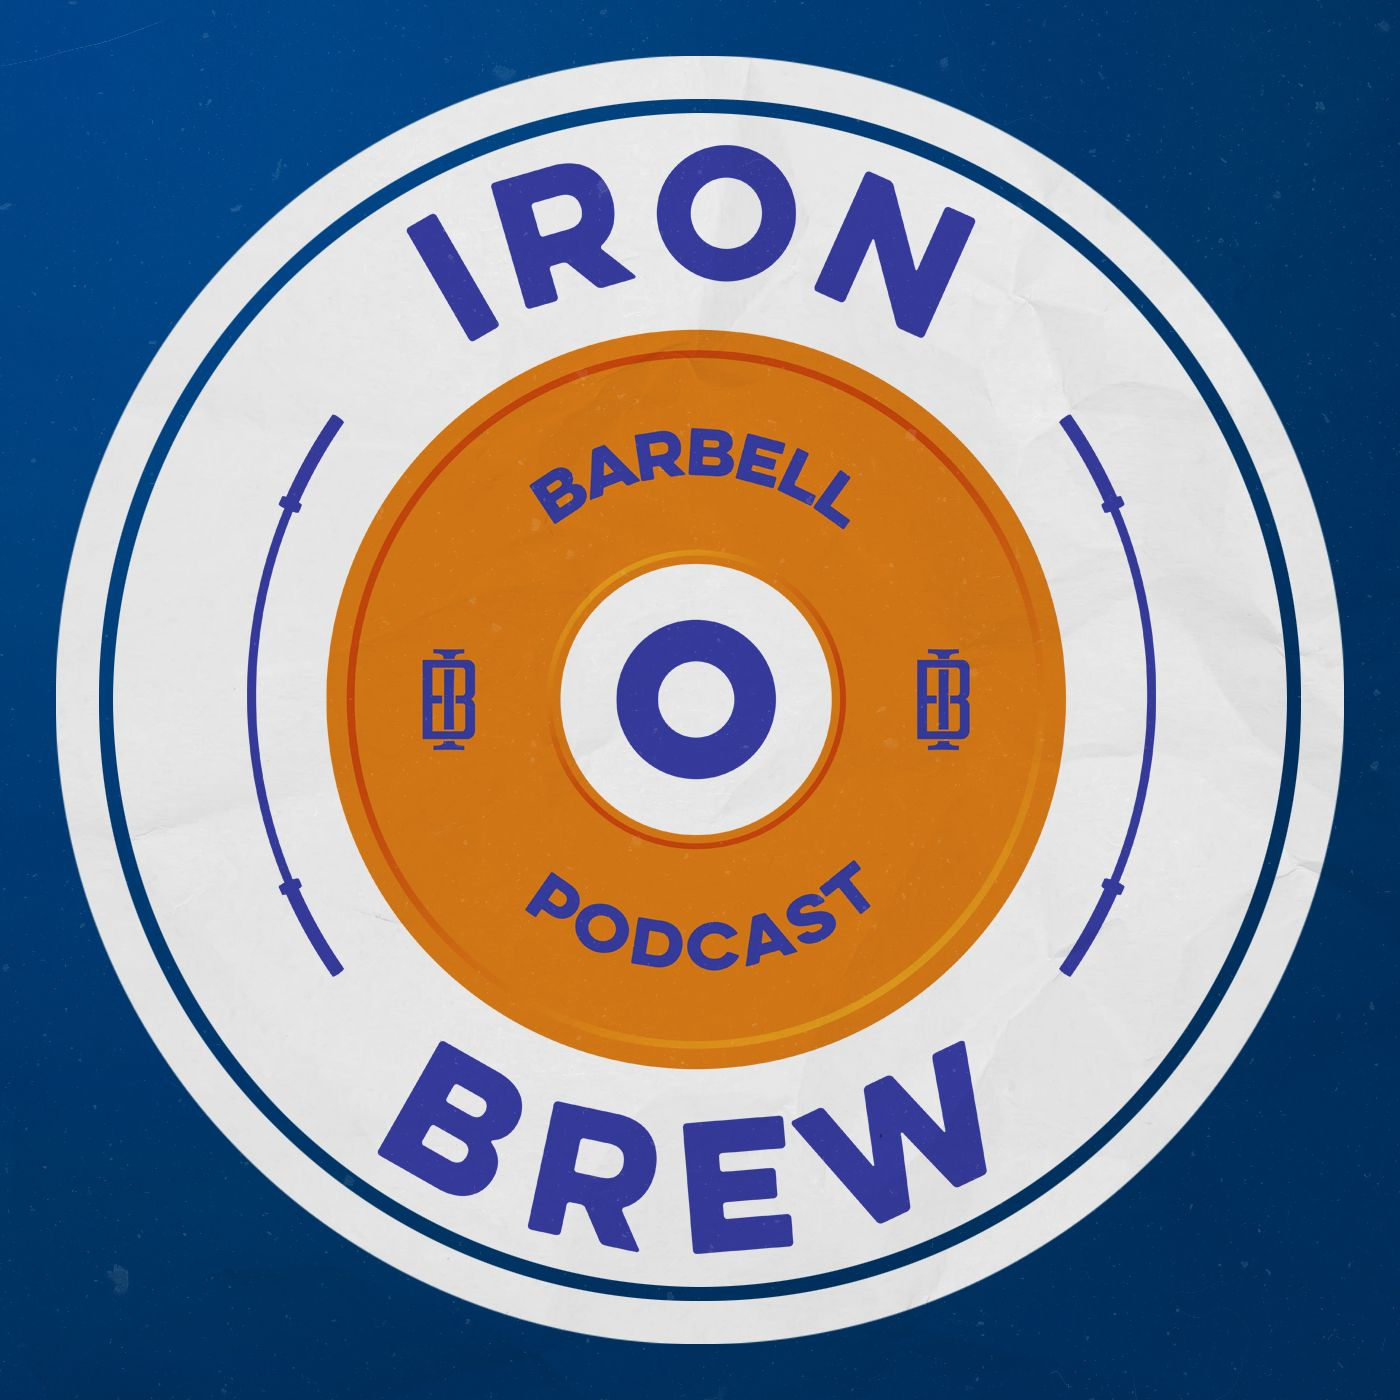 Iron Brew Barbell Podcast's tracks